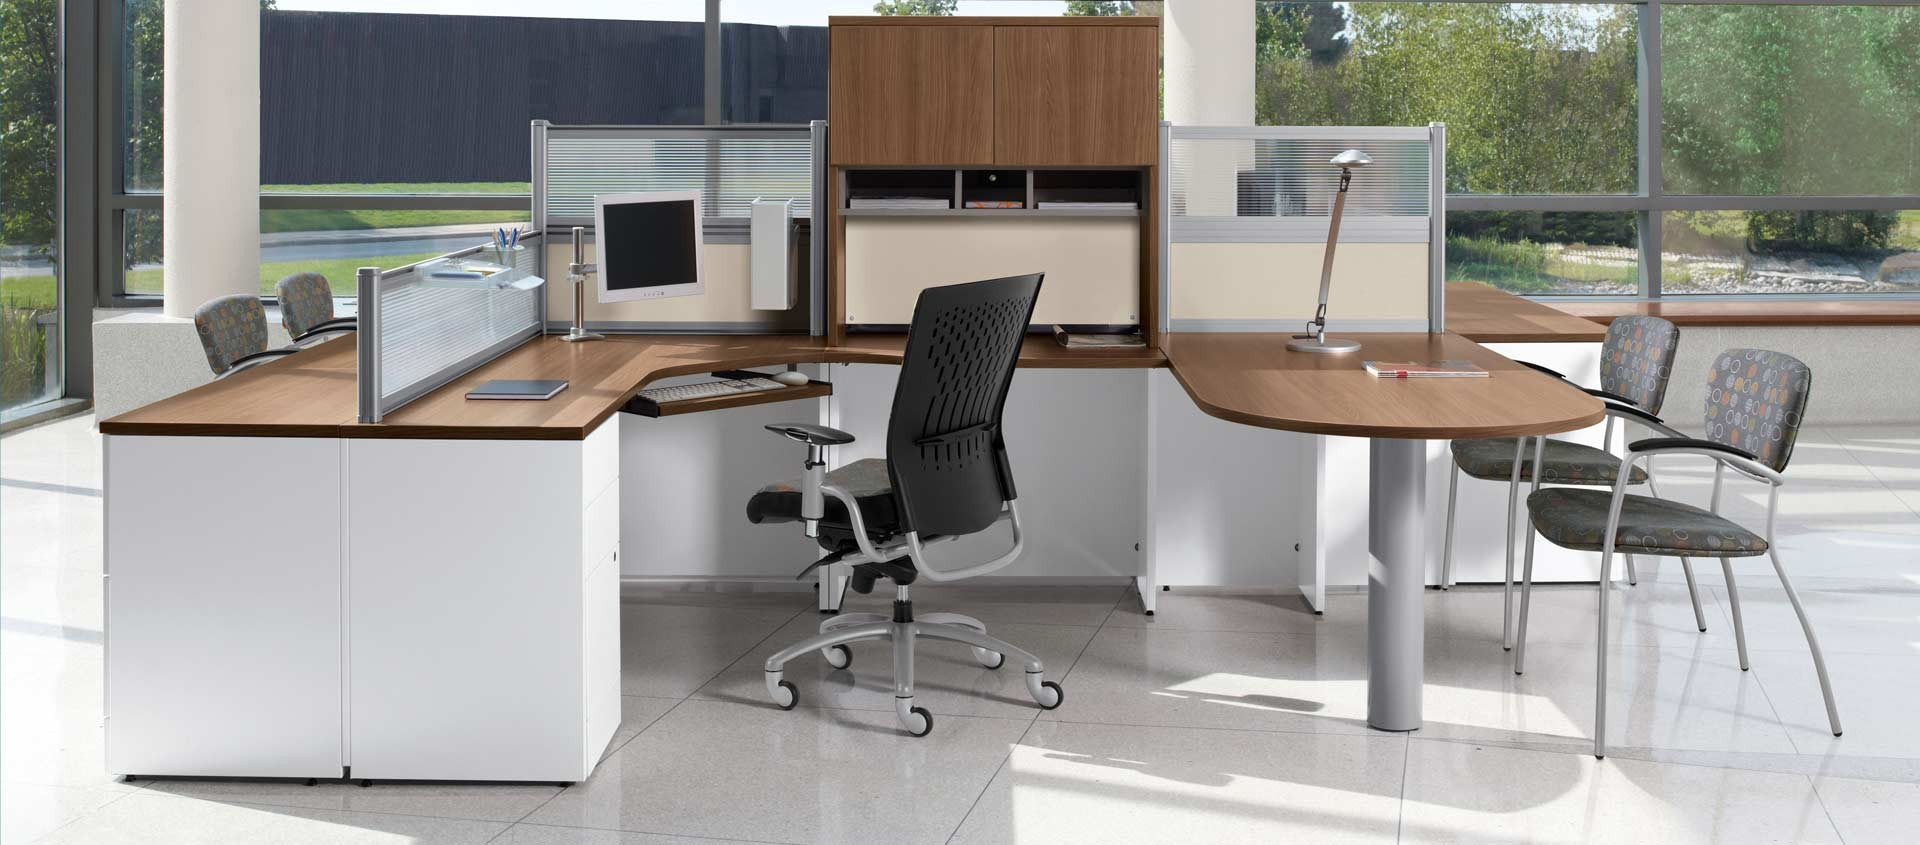 Tips on choosing right furniture for your office